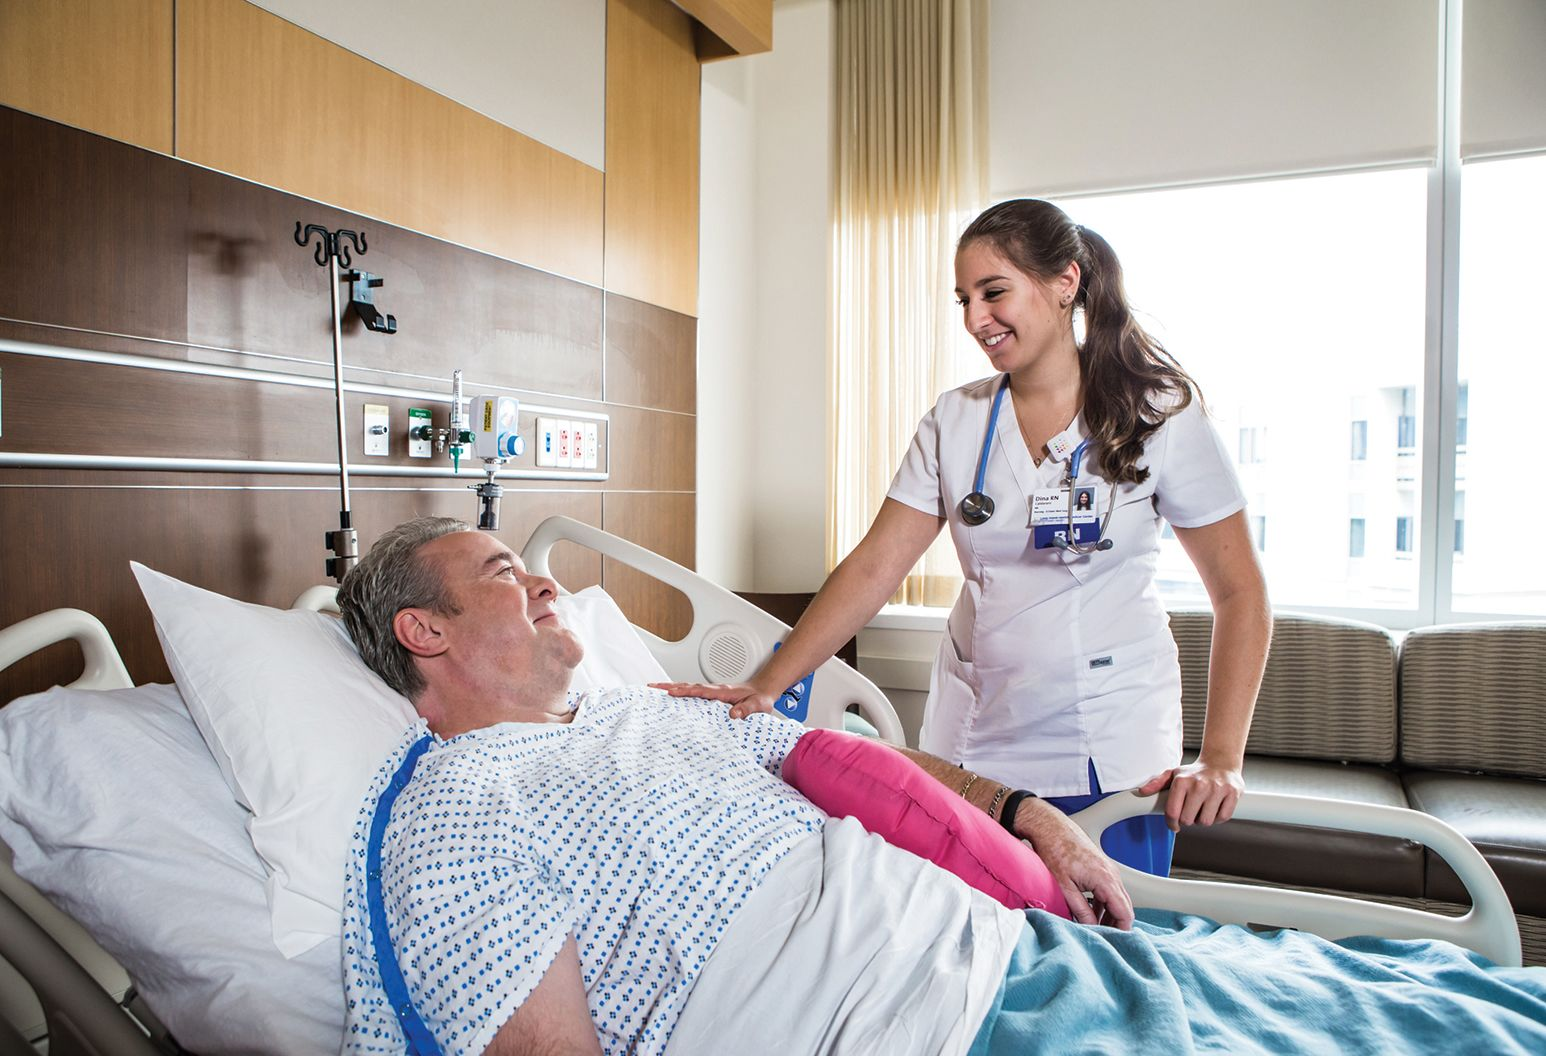 A middle aged man is laying in a hospital bed looking at a young female nurse, who is standing bedside. She touches his arm and smiles at him.